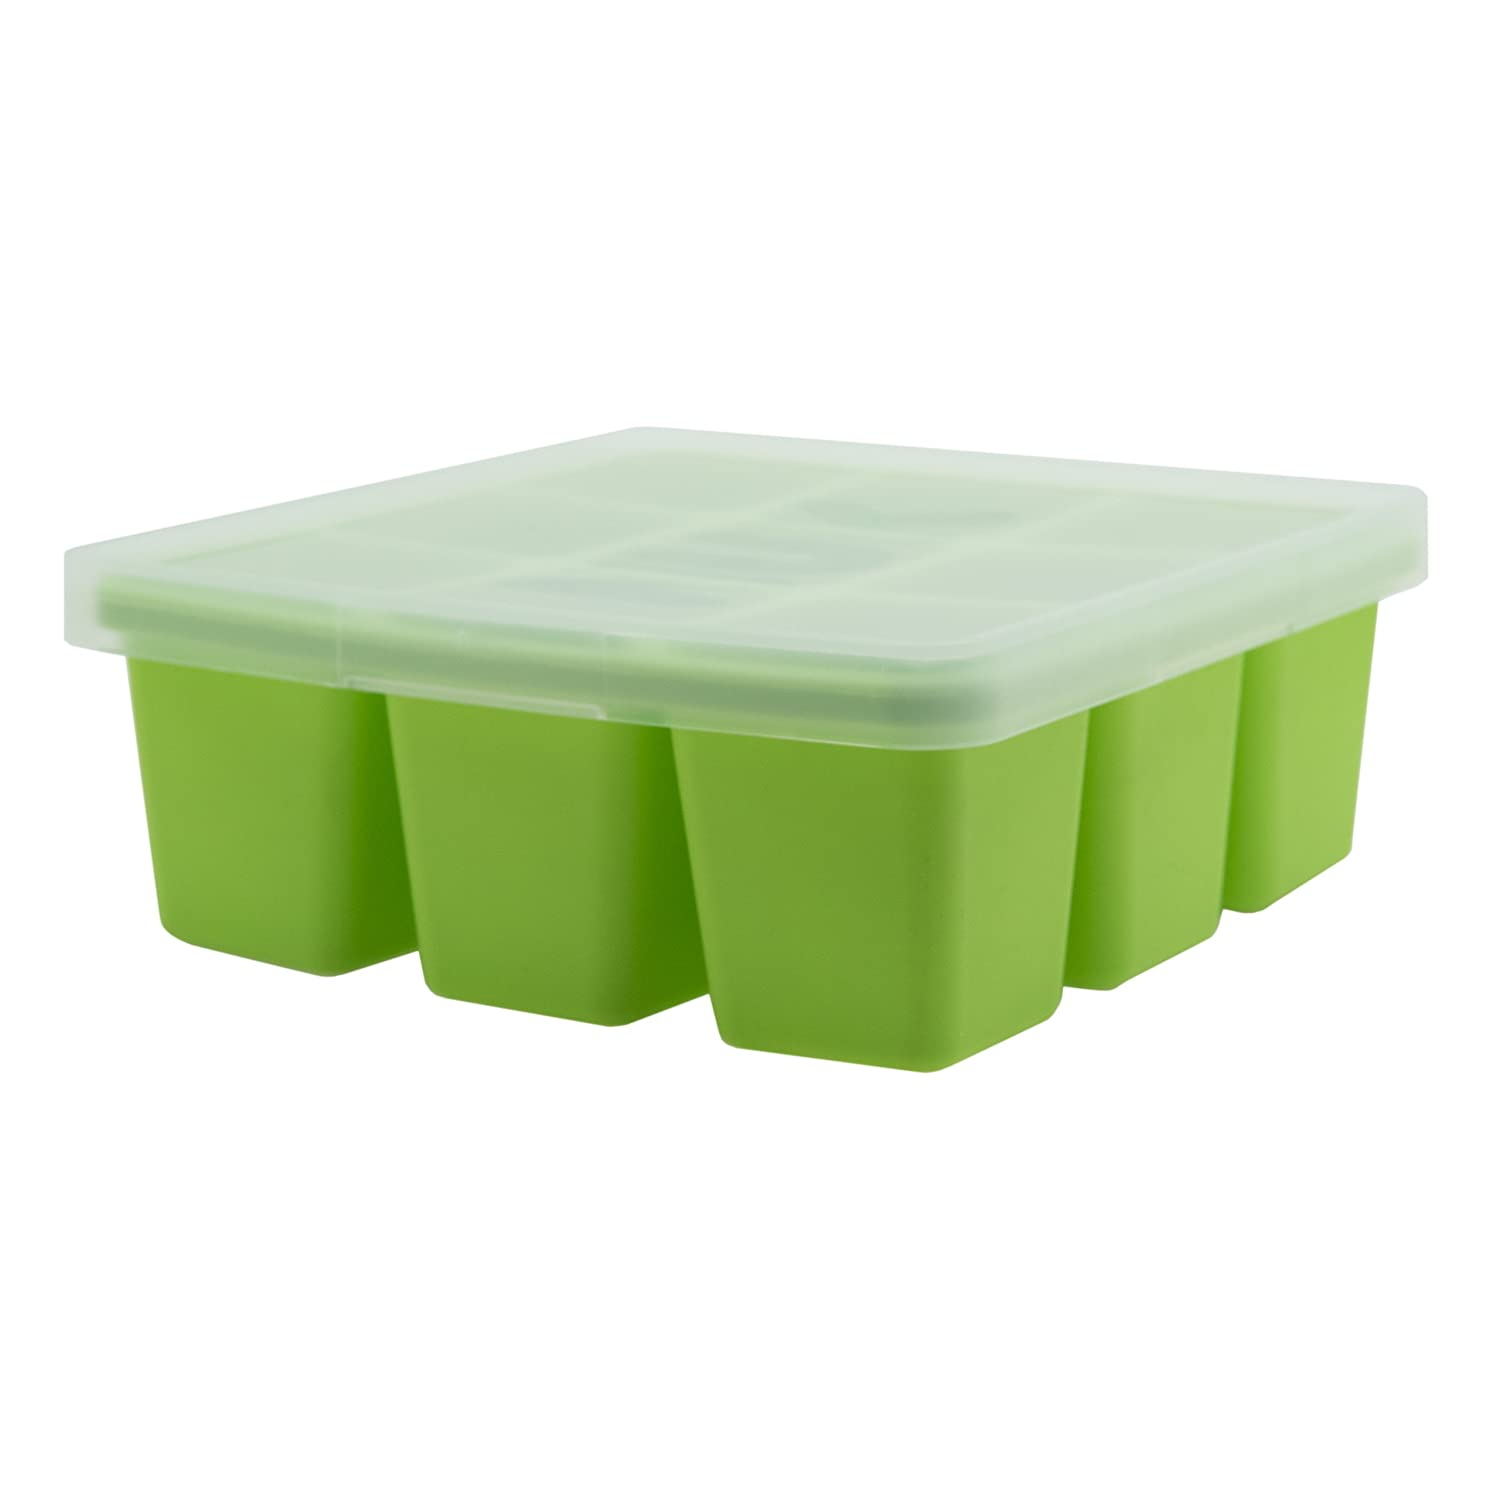 Annabel Karmel by NUK Food Cube Tray 10000024